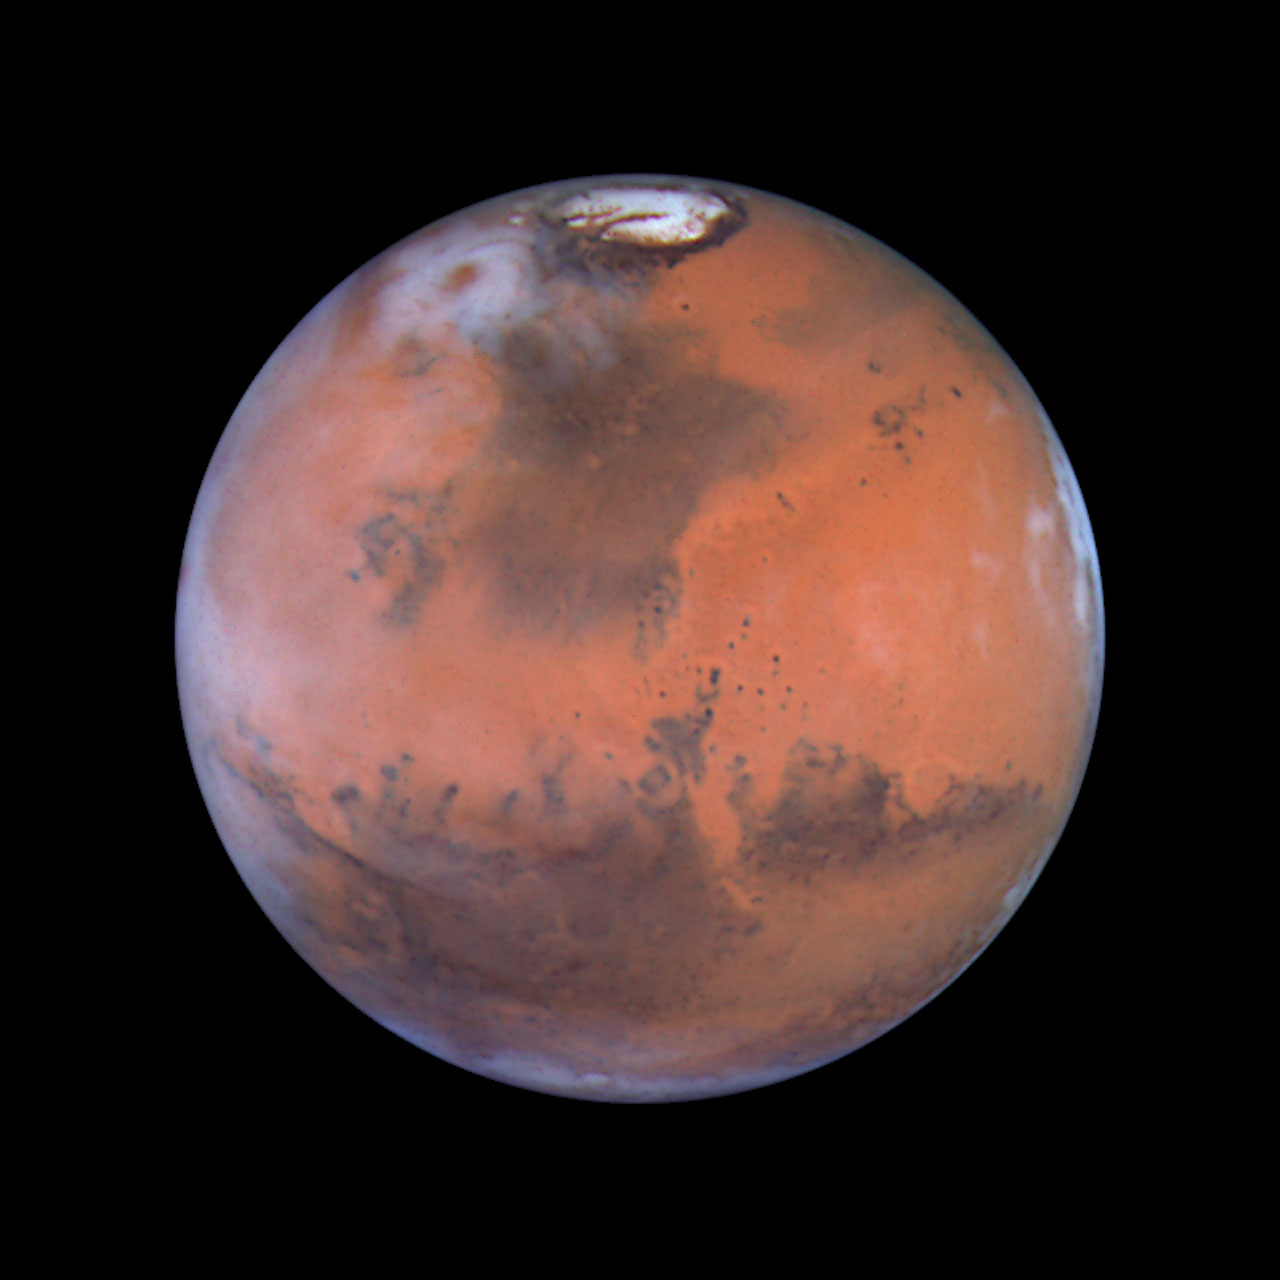 Mars at Opposition (the Acidalia Region) | ESA/Hubble